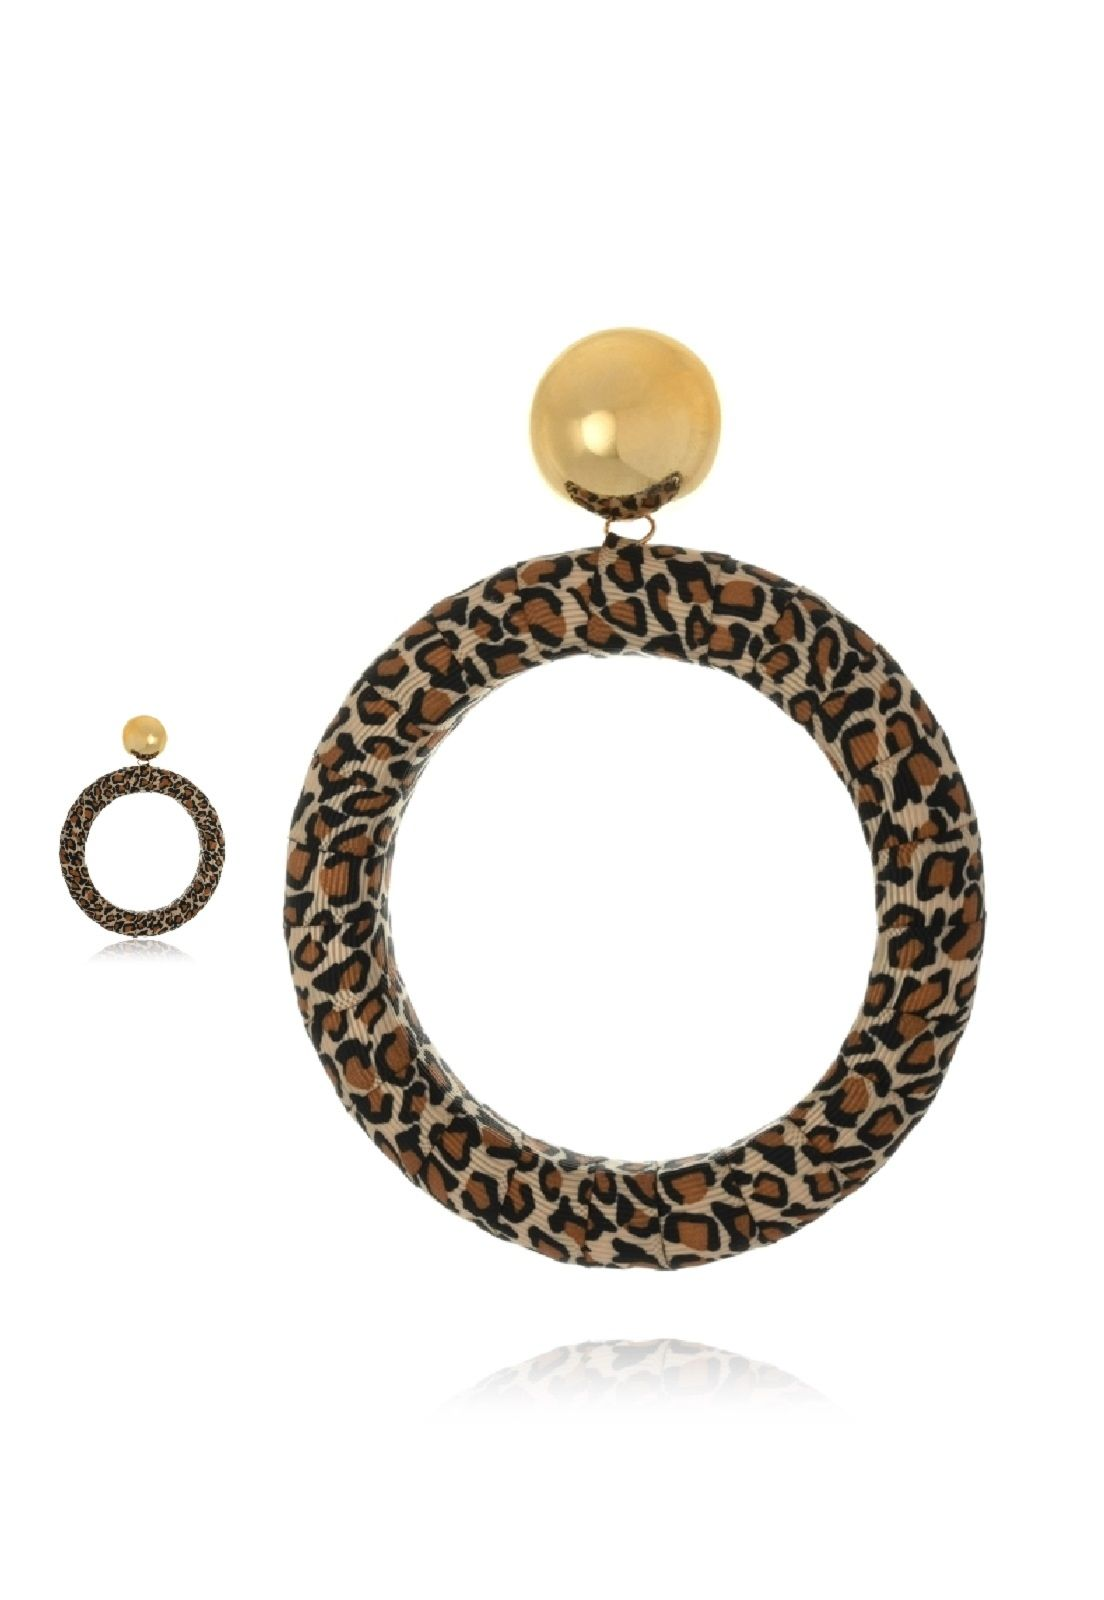 Maxi Argola Le Diamond Animal Print Dourada